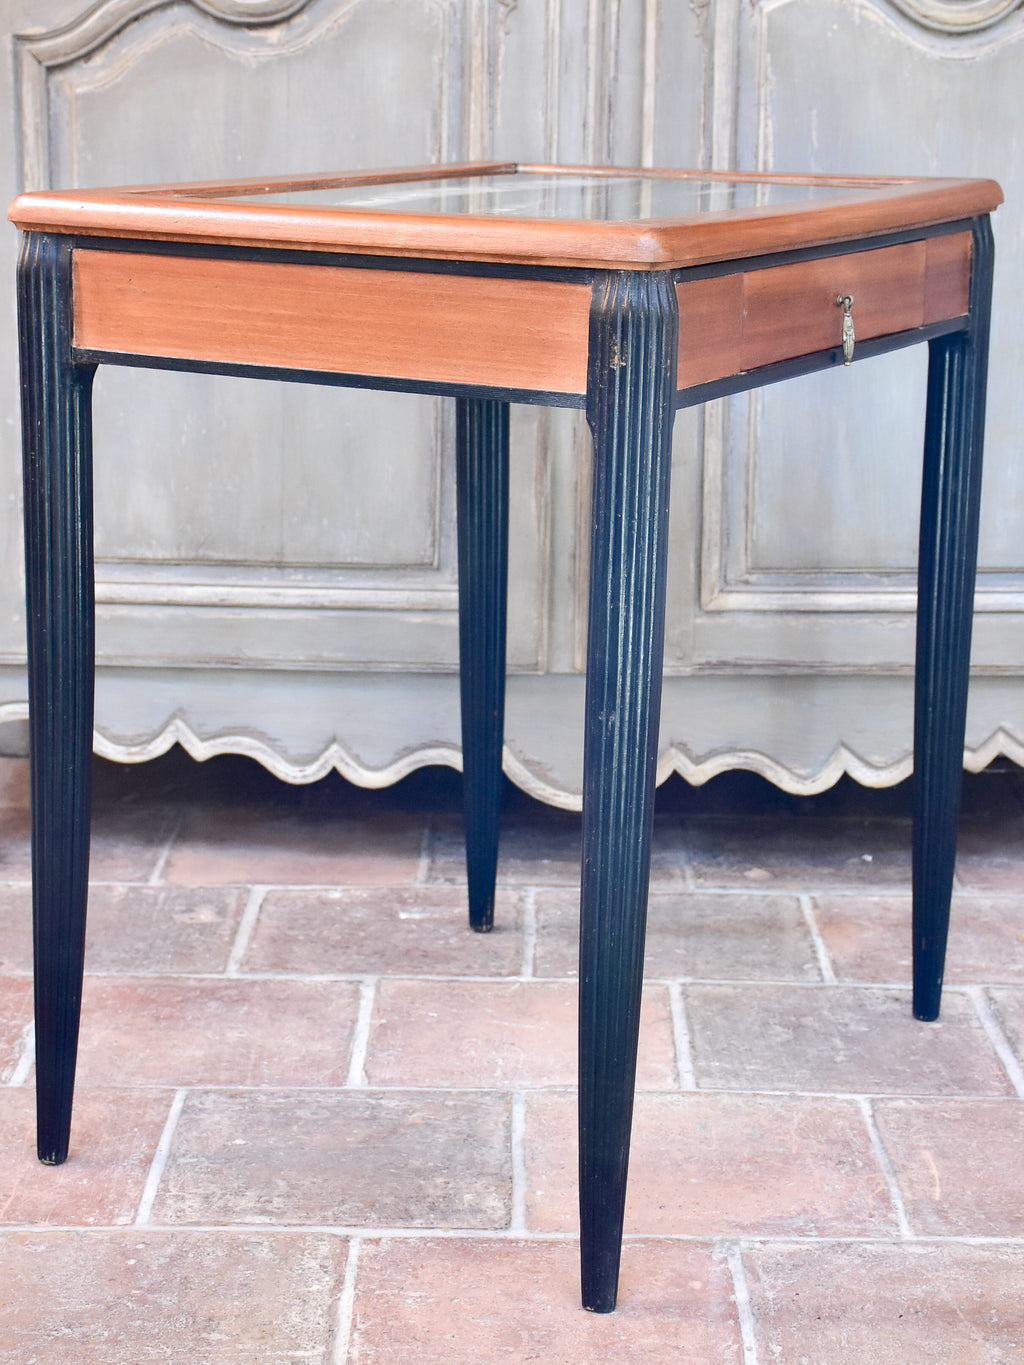 Art Deco Thonet mirrored table attributed to André Groult